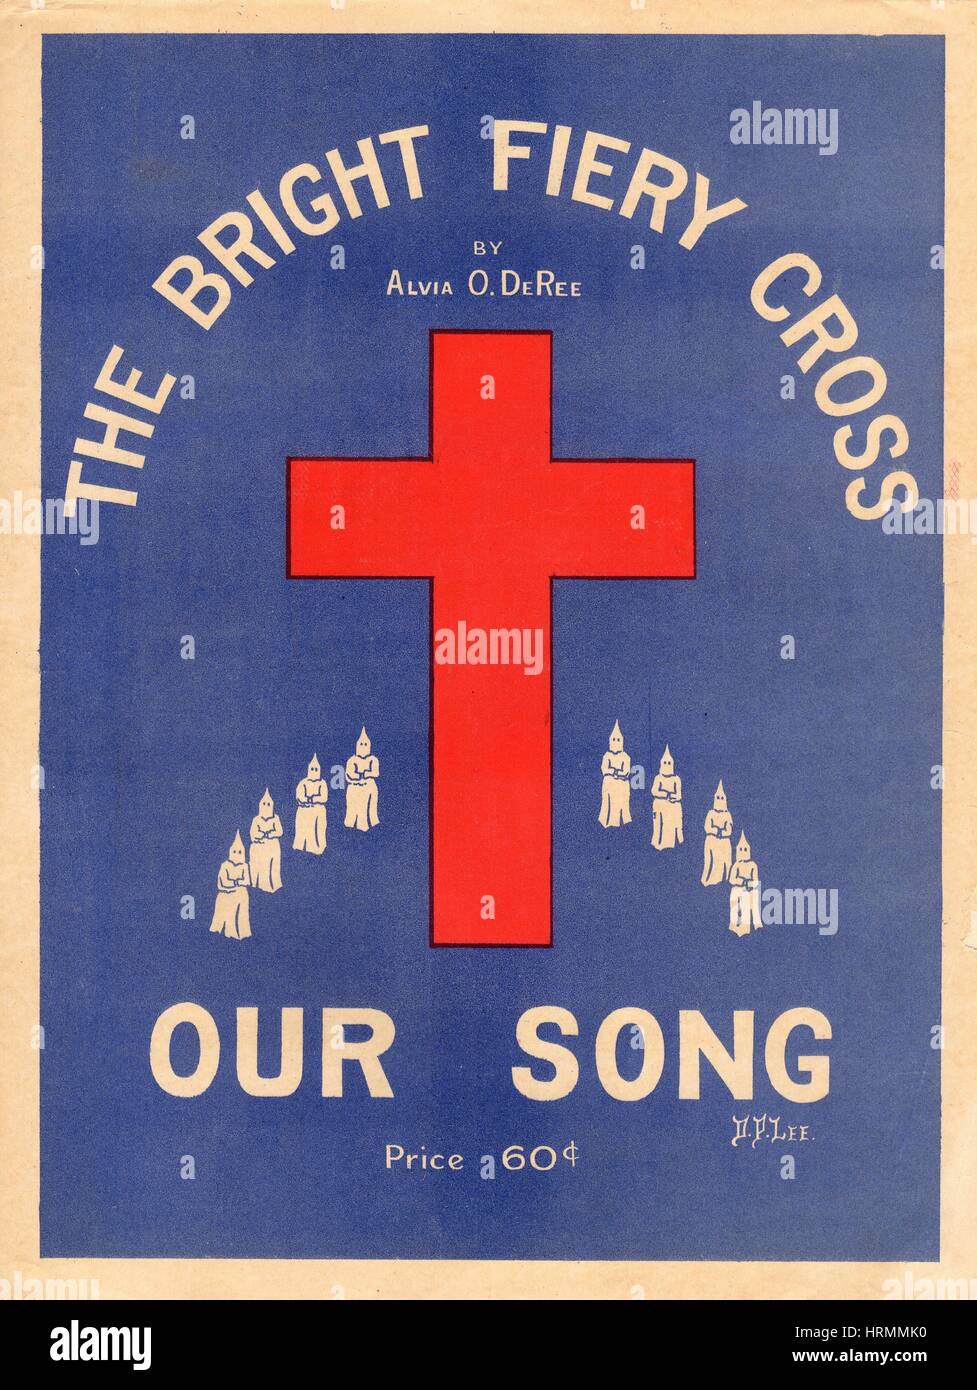 The bright fiery cross our song ku klux klan sheet music words the bright fiery cross our song ku klux klan sheet music words by alvia o deree music by the rev george bennard no publisher indicated 1913 biocorpaavc Images